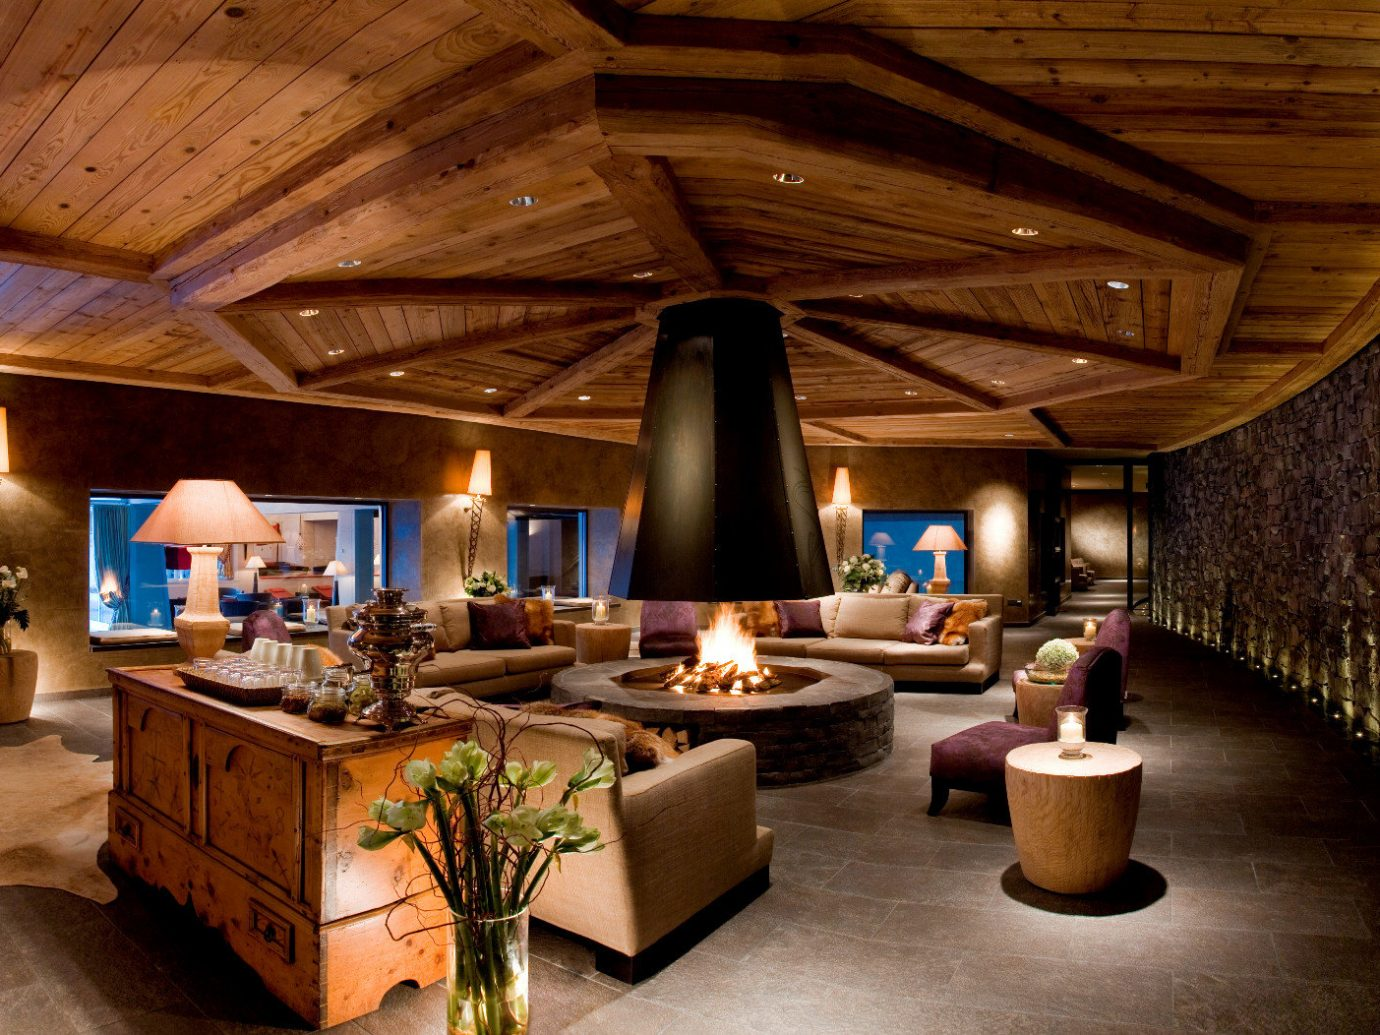 Elegant Fireplace Forest Honeymoon Lounge Luxury Mountains Nature Outdoors Romance Ski Trip Ideas Winter ceiling indoor floor room recreation room estate billiard room home interior design log cabin lighting living room wood Lobby Design Resort mansion cottage furniture area